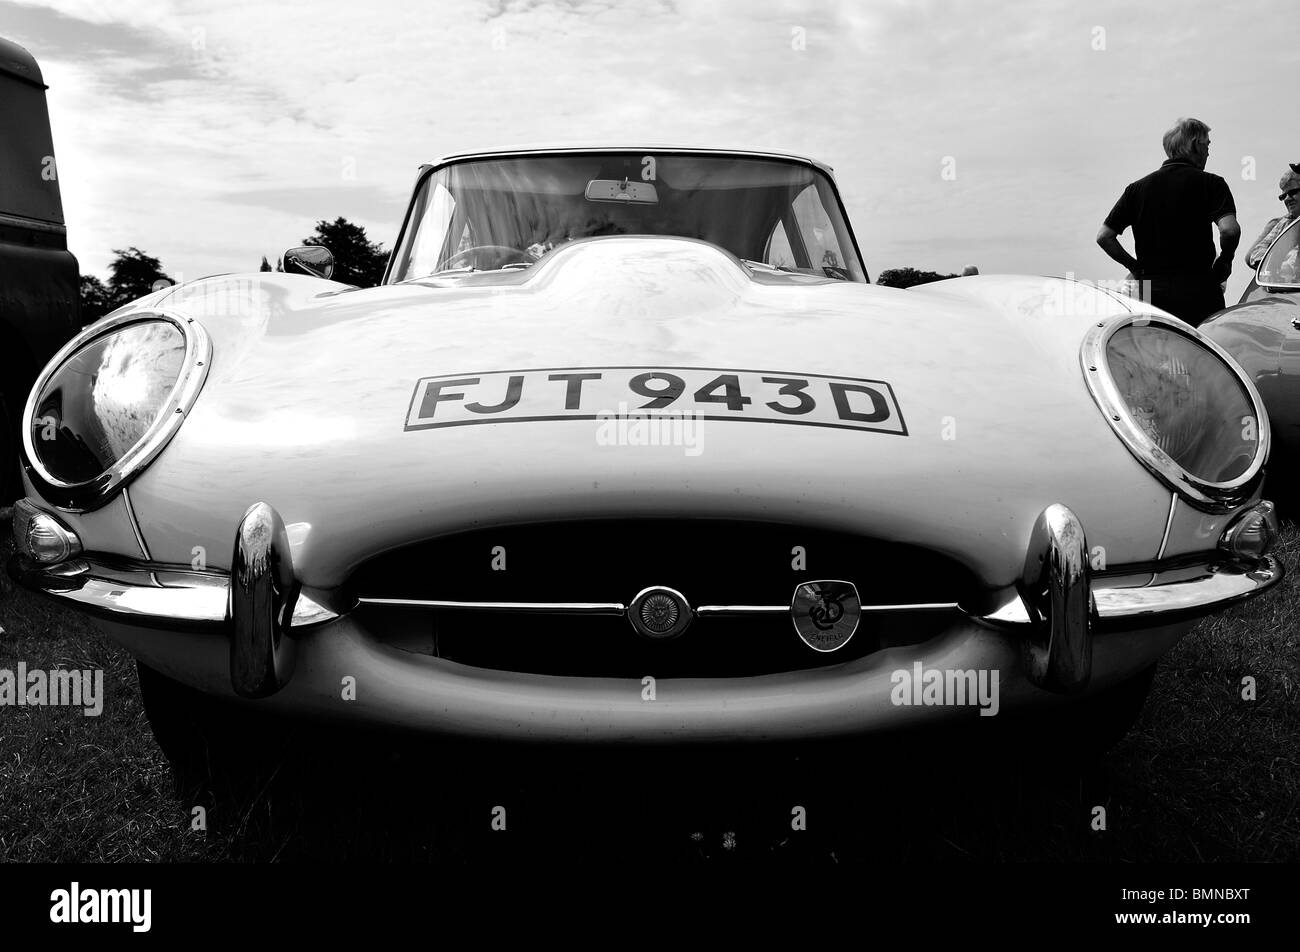 Jaguar E-type at Classic Car Show in Luton 2010 - Stock Image